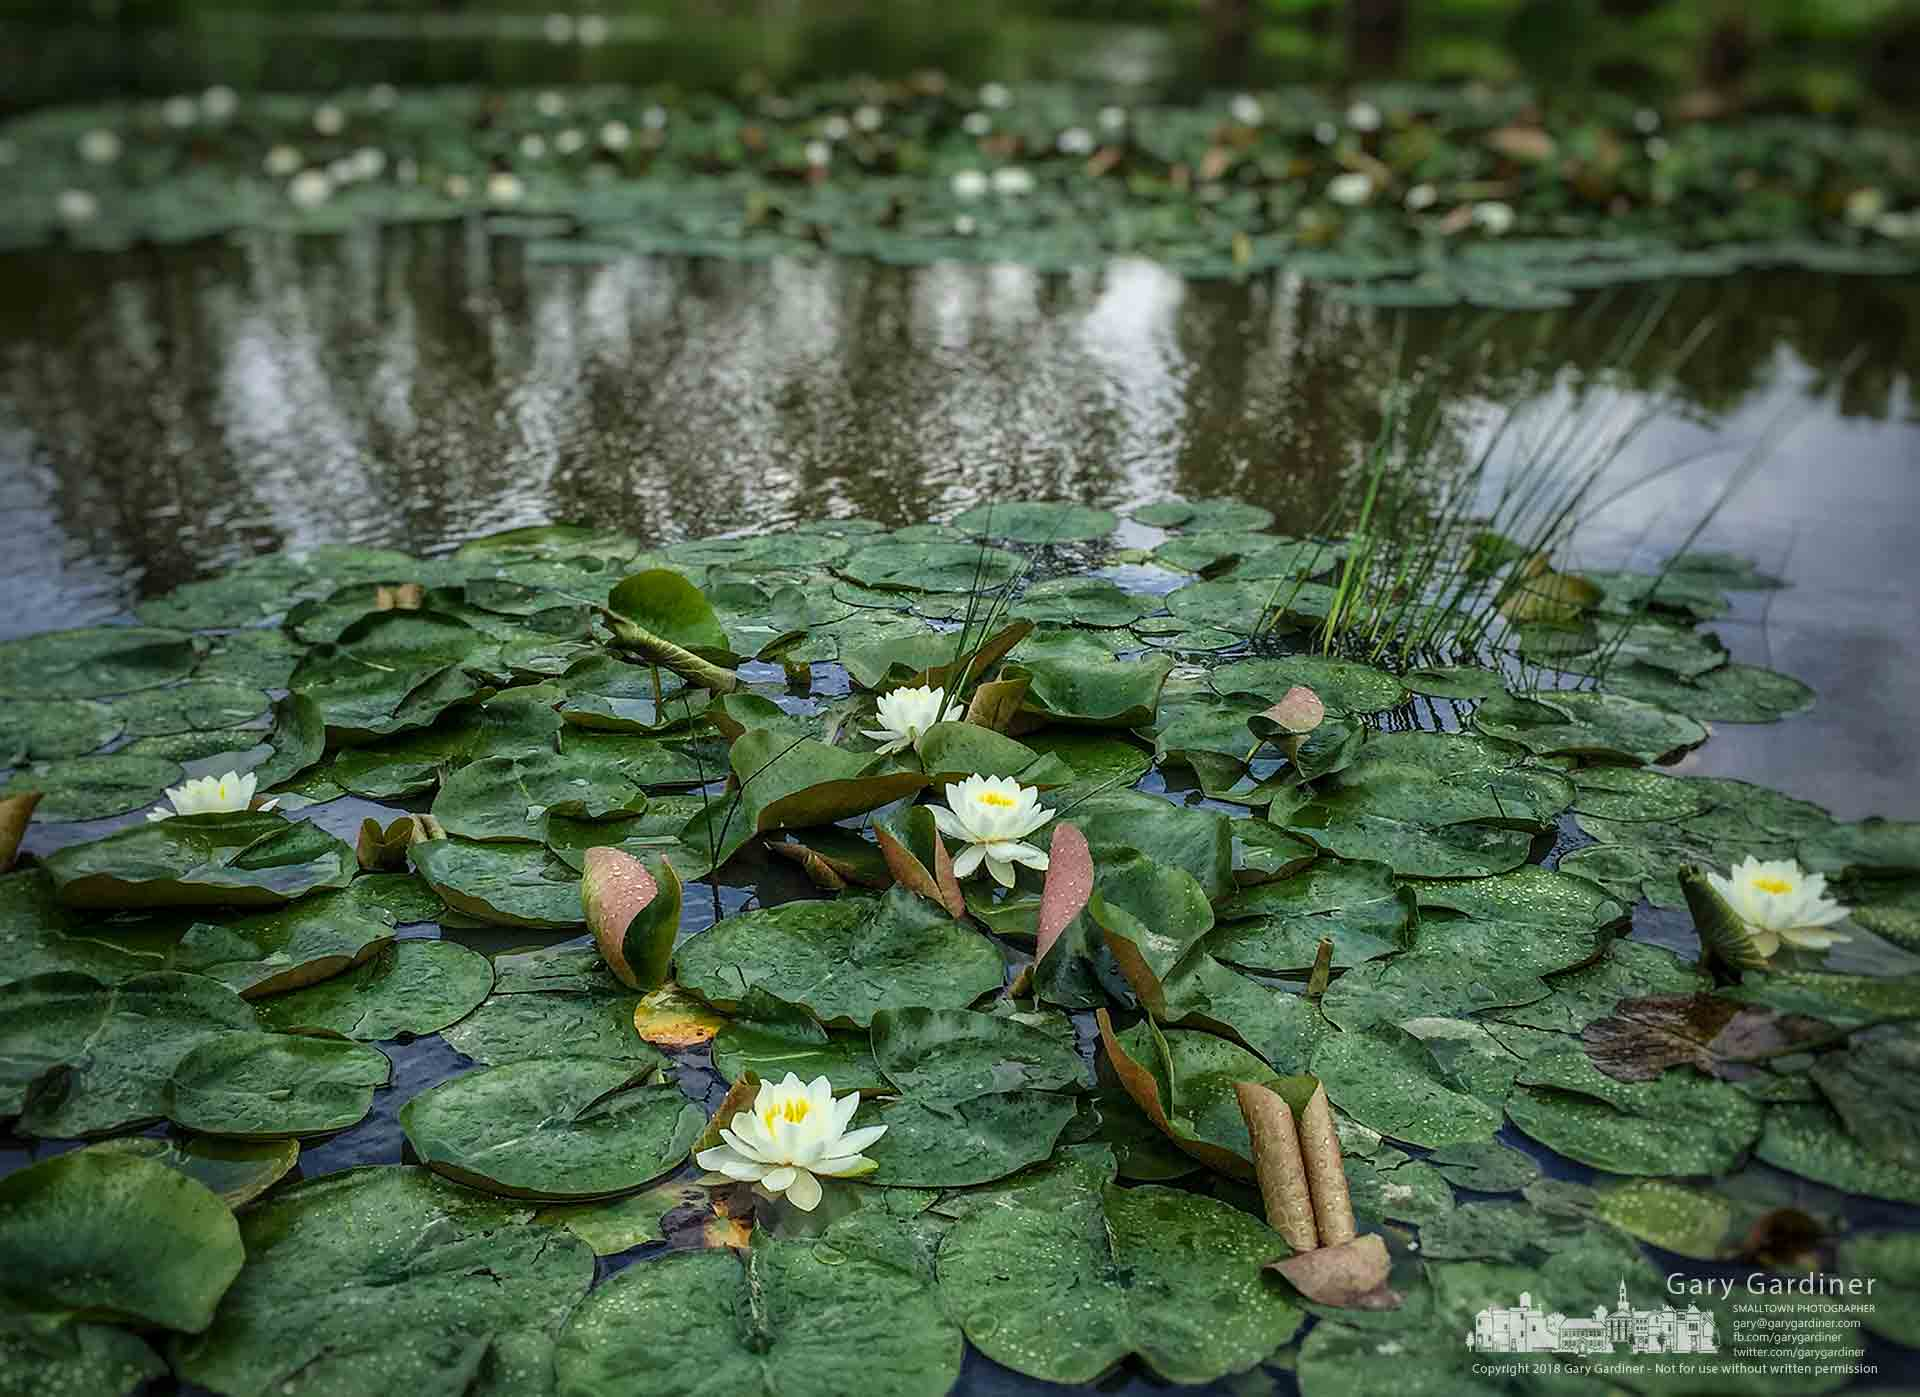 Water lilies blossom in the wetland at Highlands Park. My Final Photo for May 19, 2018.